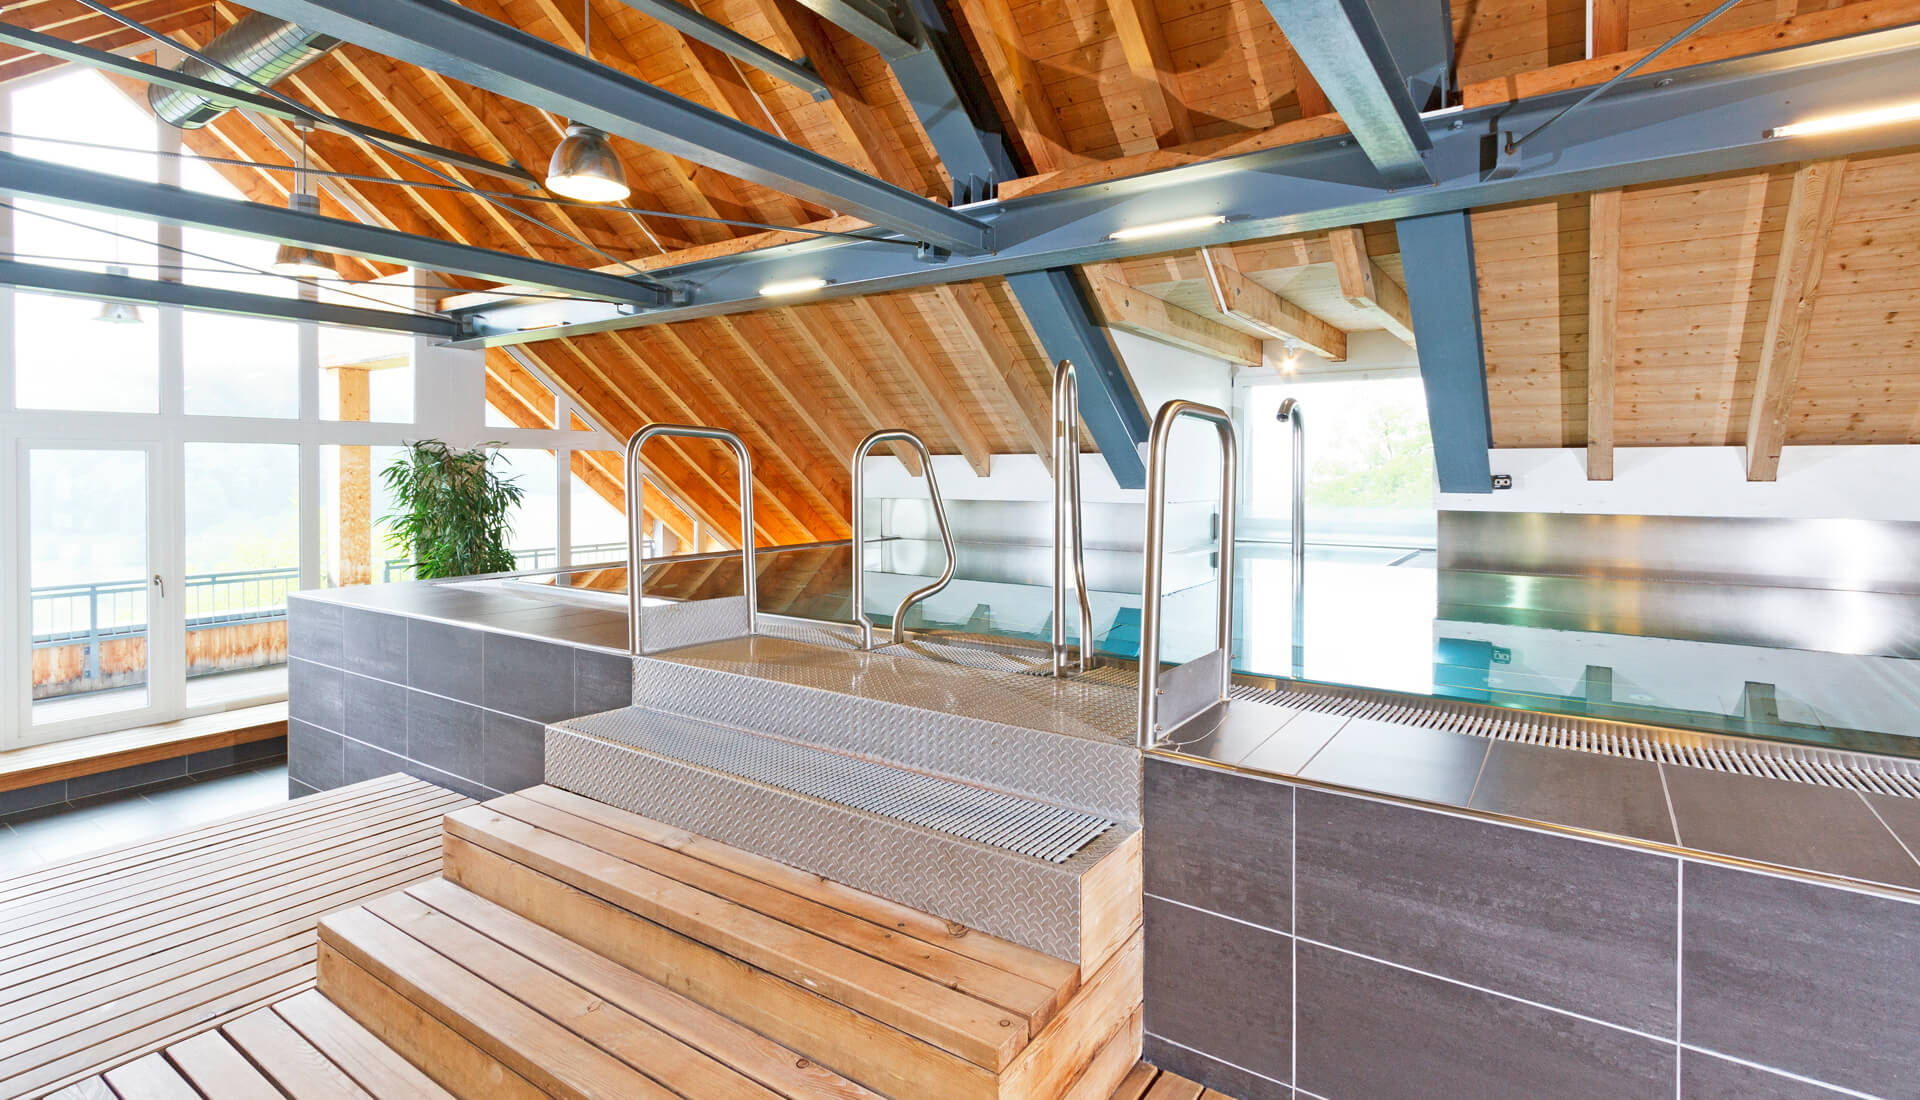 Whirlpool in der Wellness-Attika